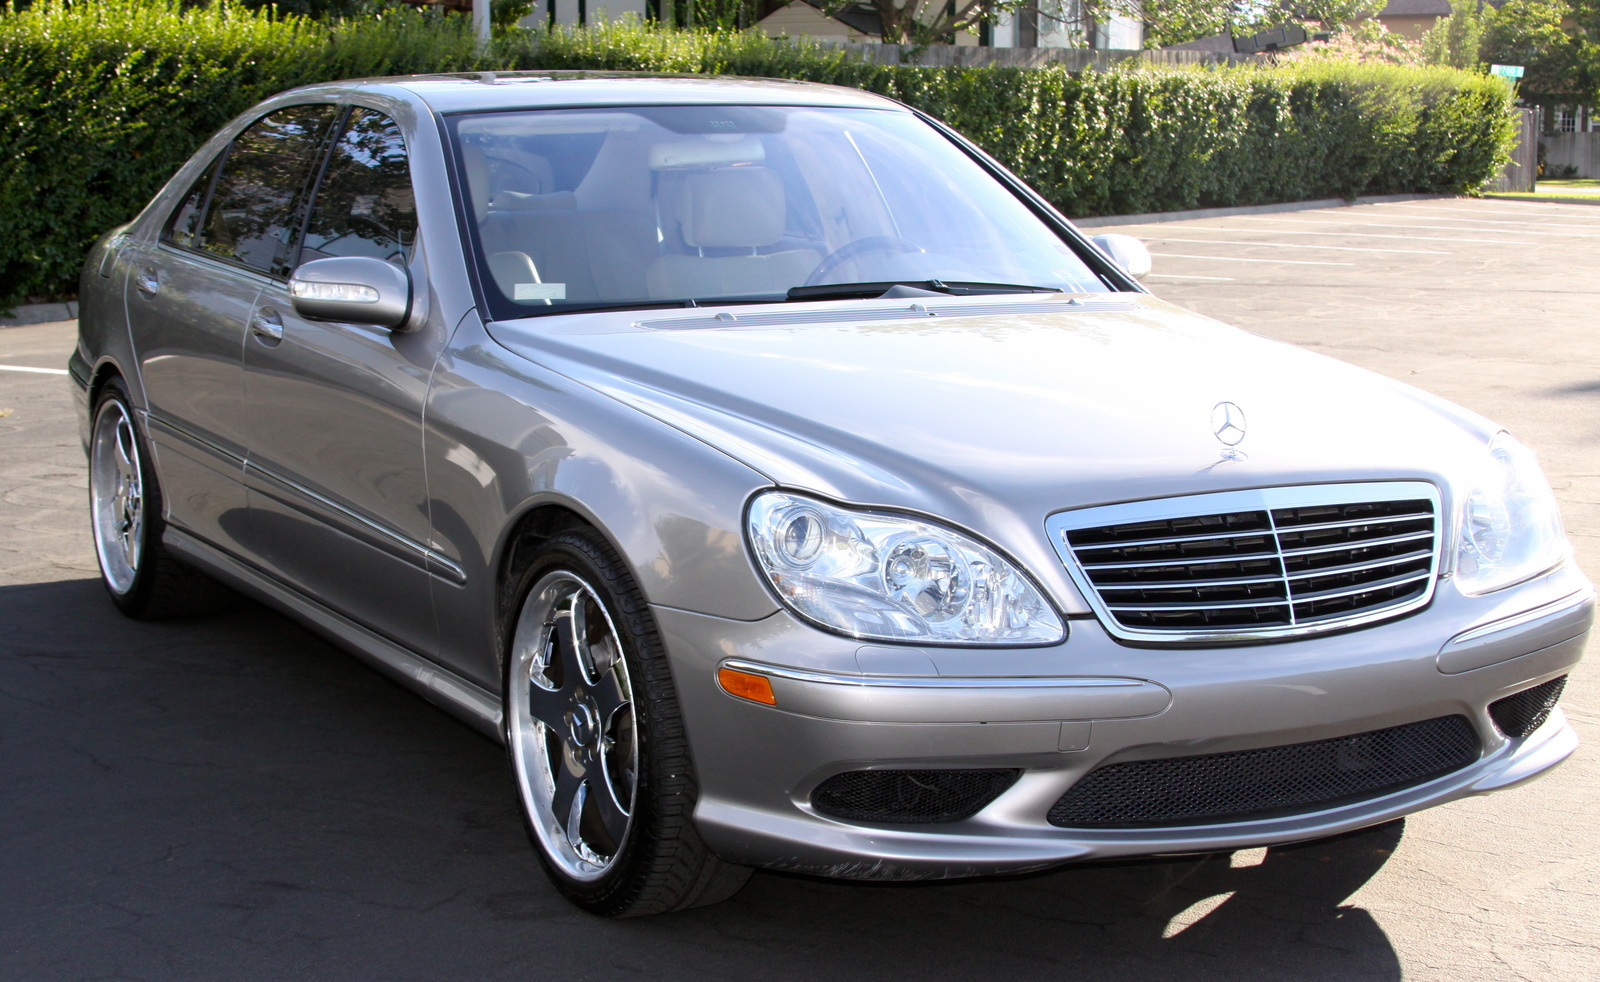 2005 mercedes benz s class pictures cargurus for 2005 s500 mercedes benz